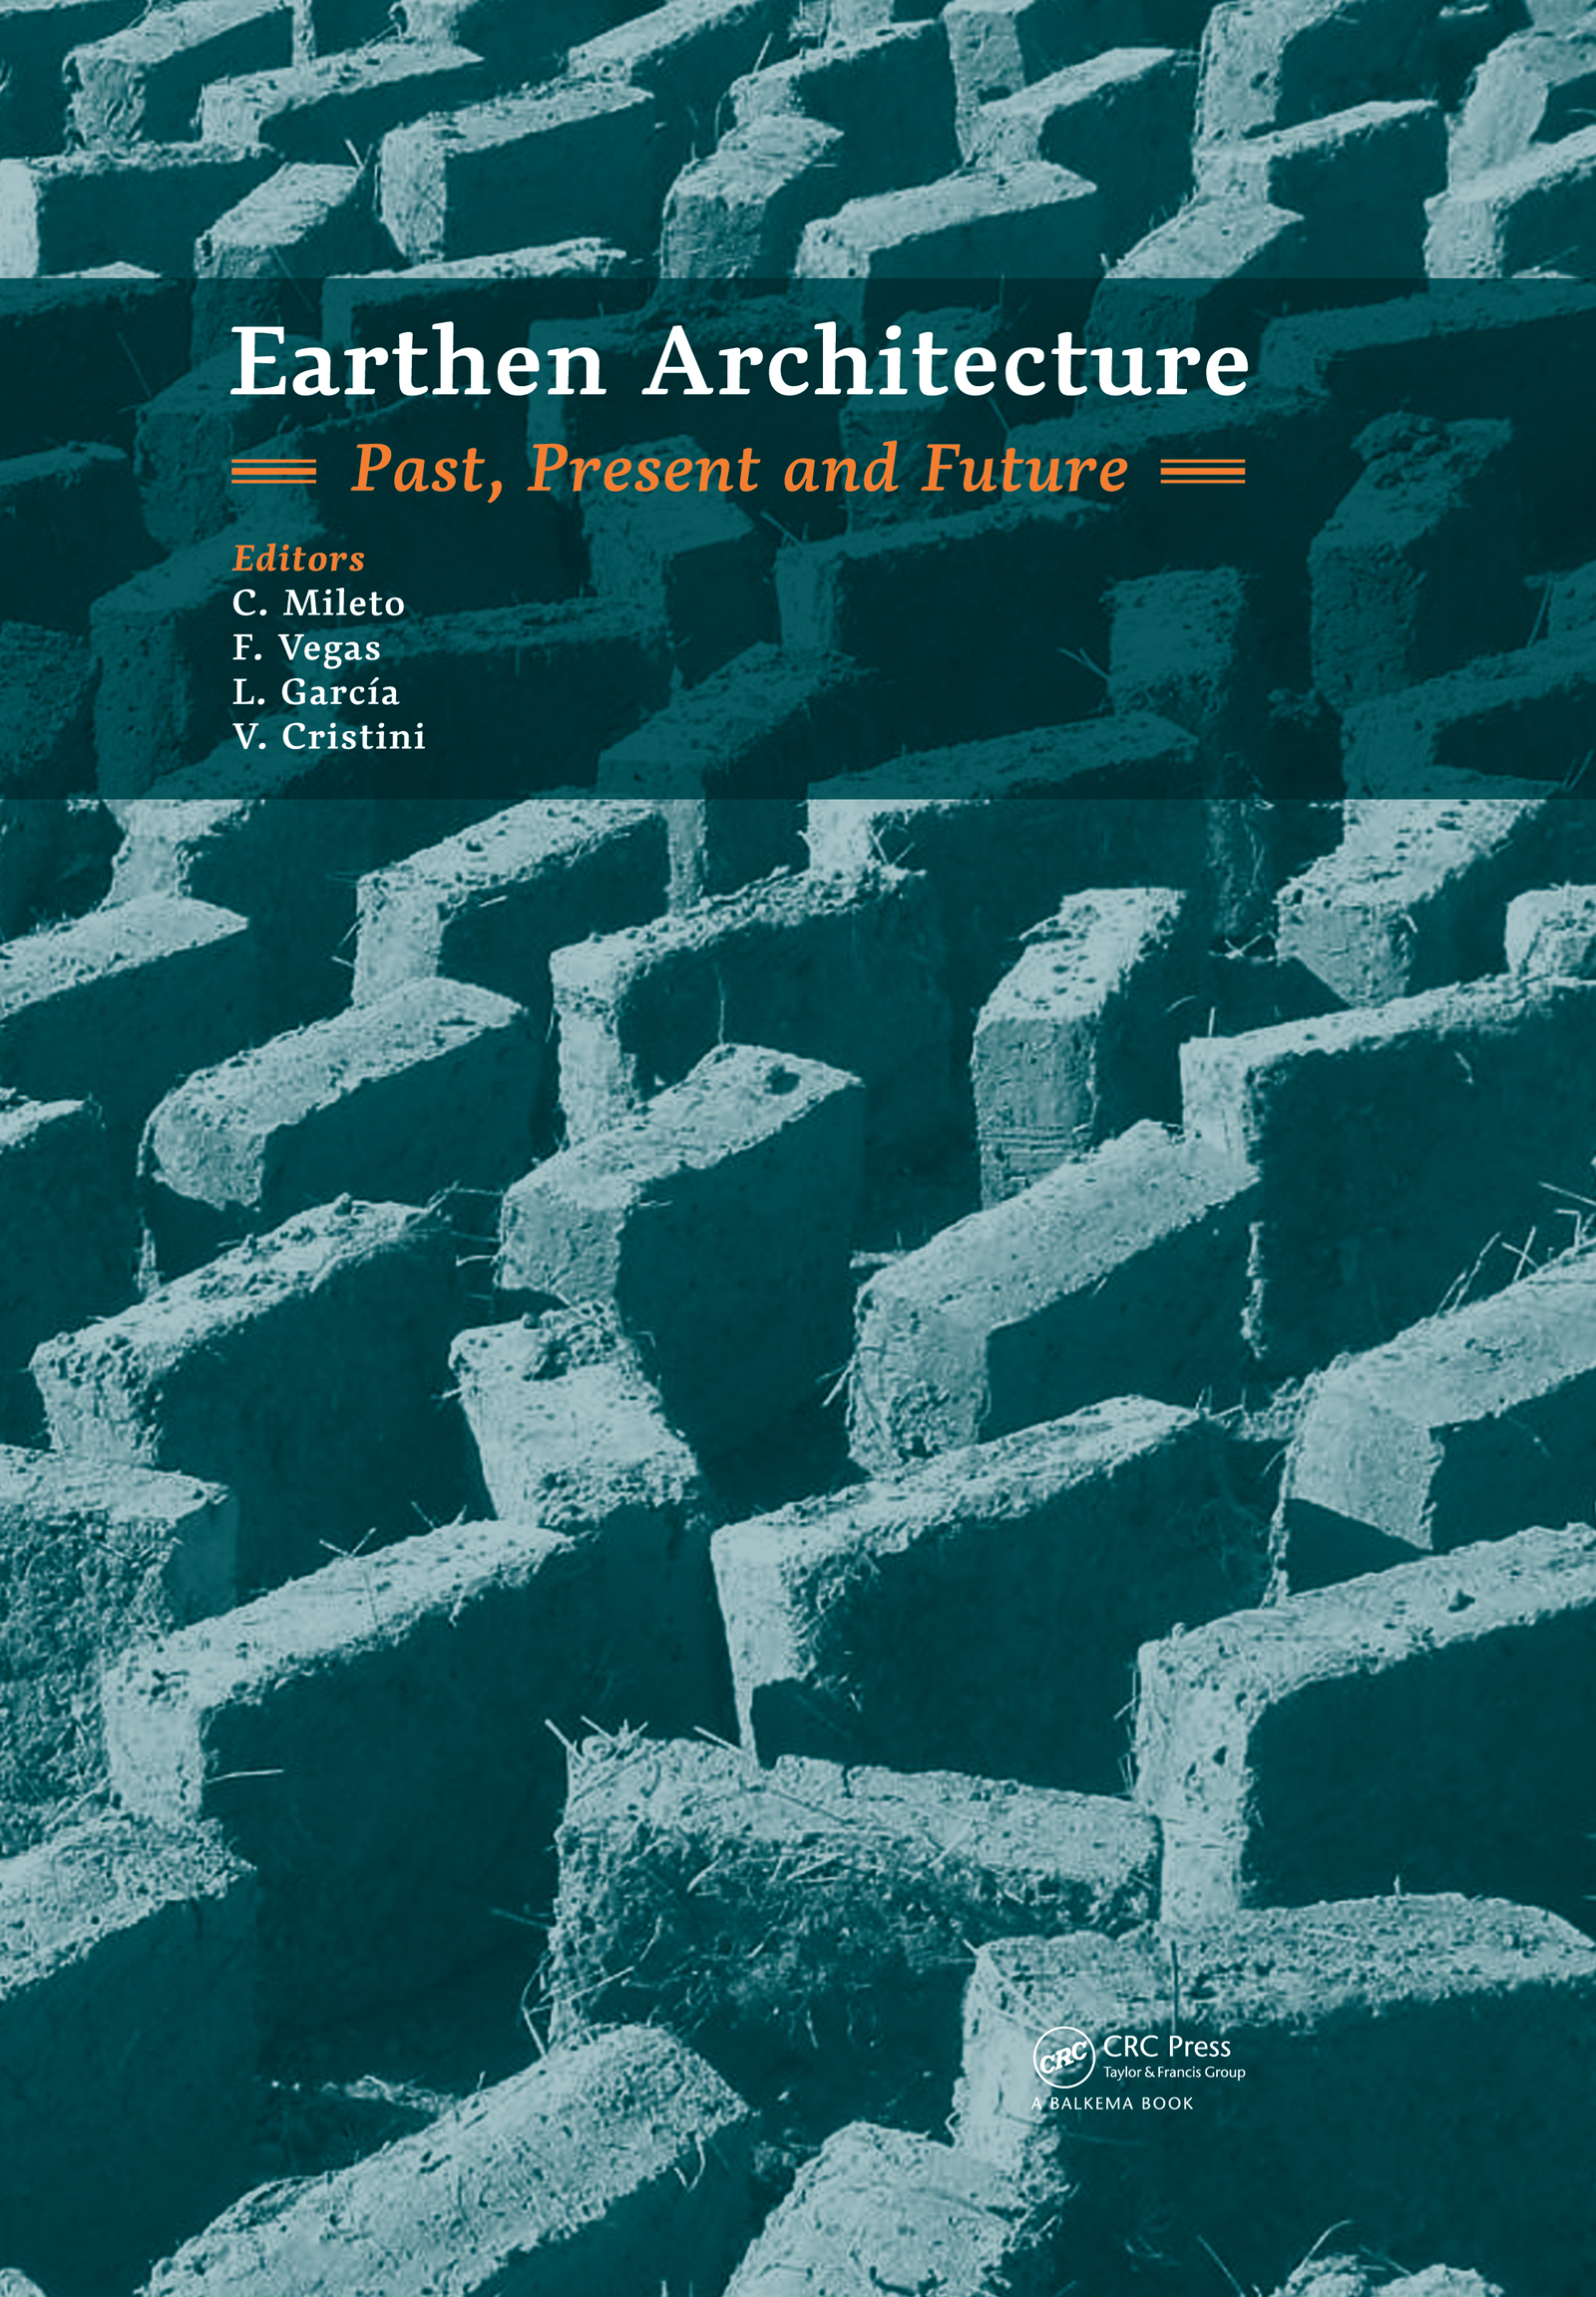 Earthen Architecture: Past, Present and Future: 1st Edition (Pack - Book and CD) book cover